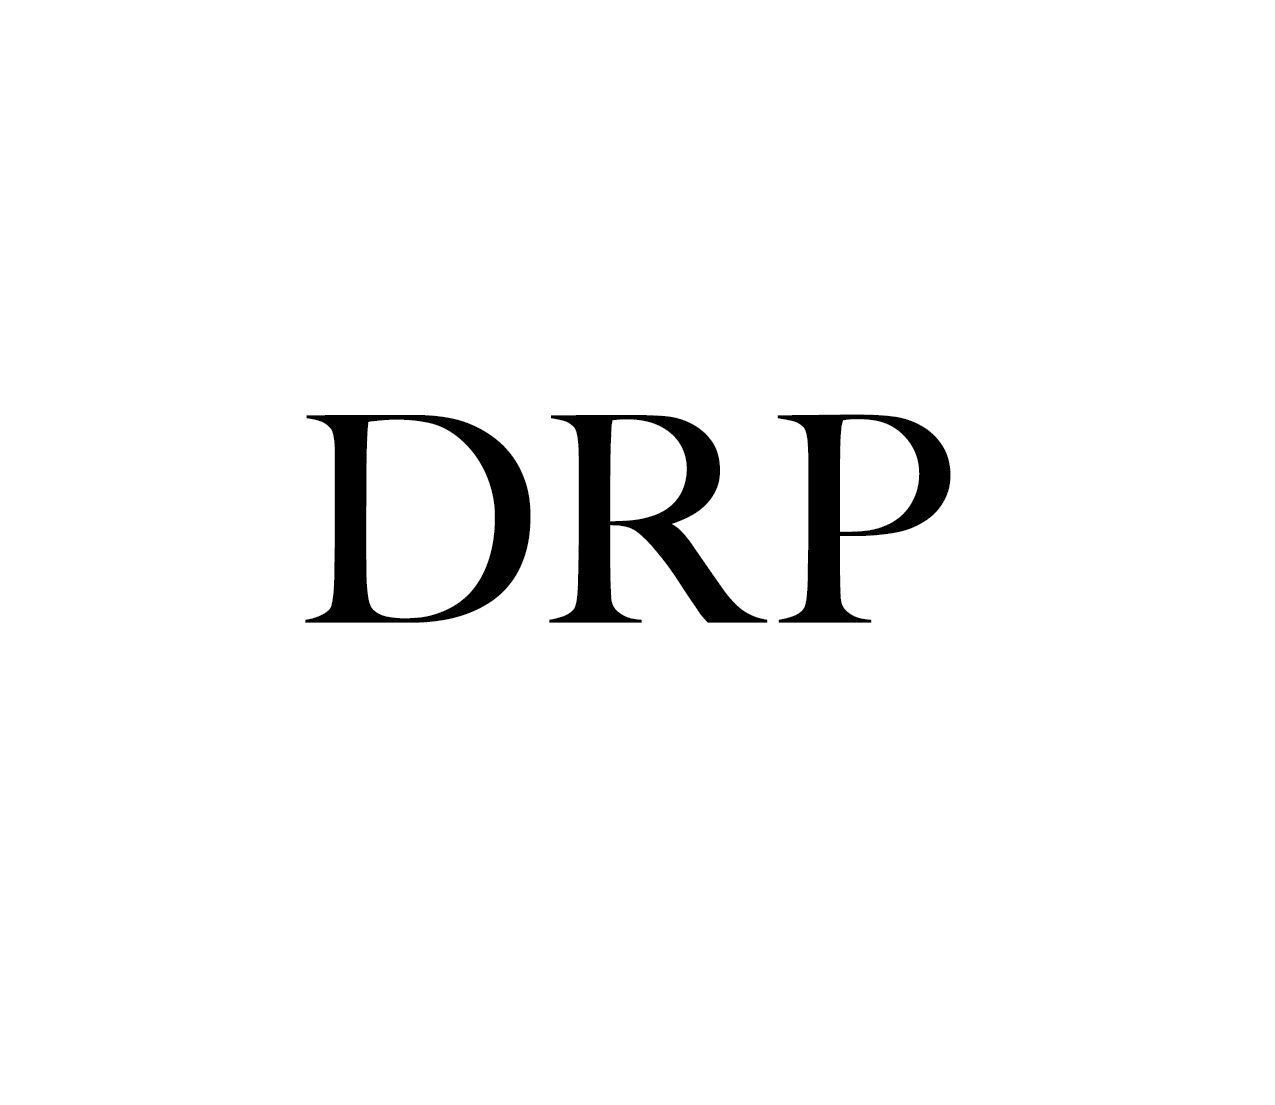 DRP | Digital Retail Partners